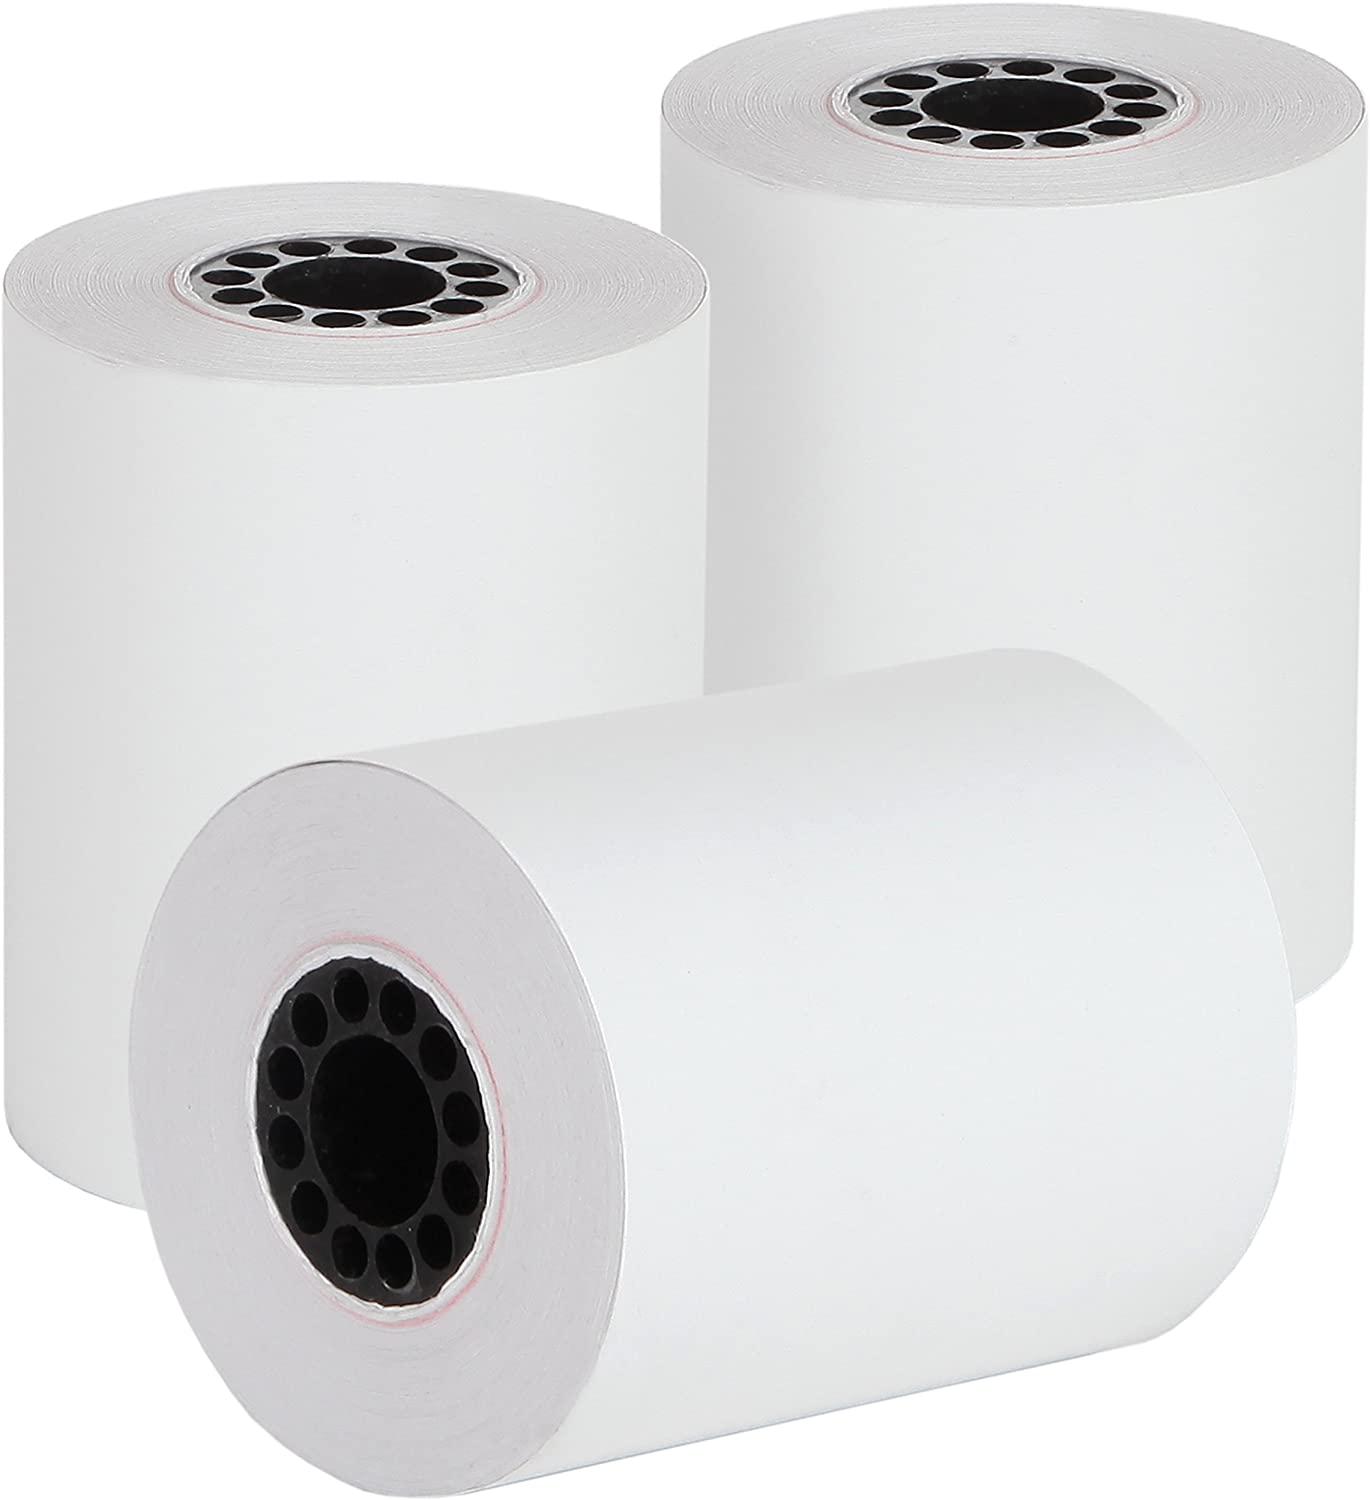 Pack of 10 Rolls 2 1//4 x 85 White Thermal Paper Credit Card /& Cash Register Tape